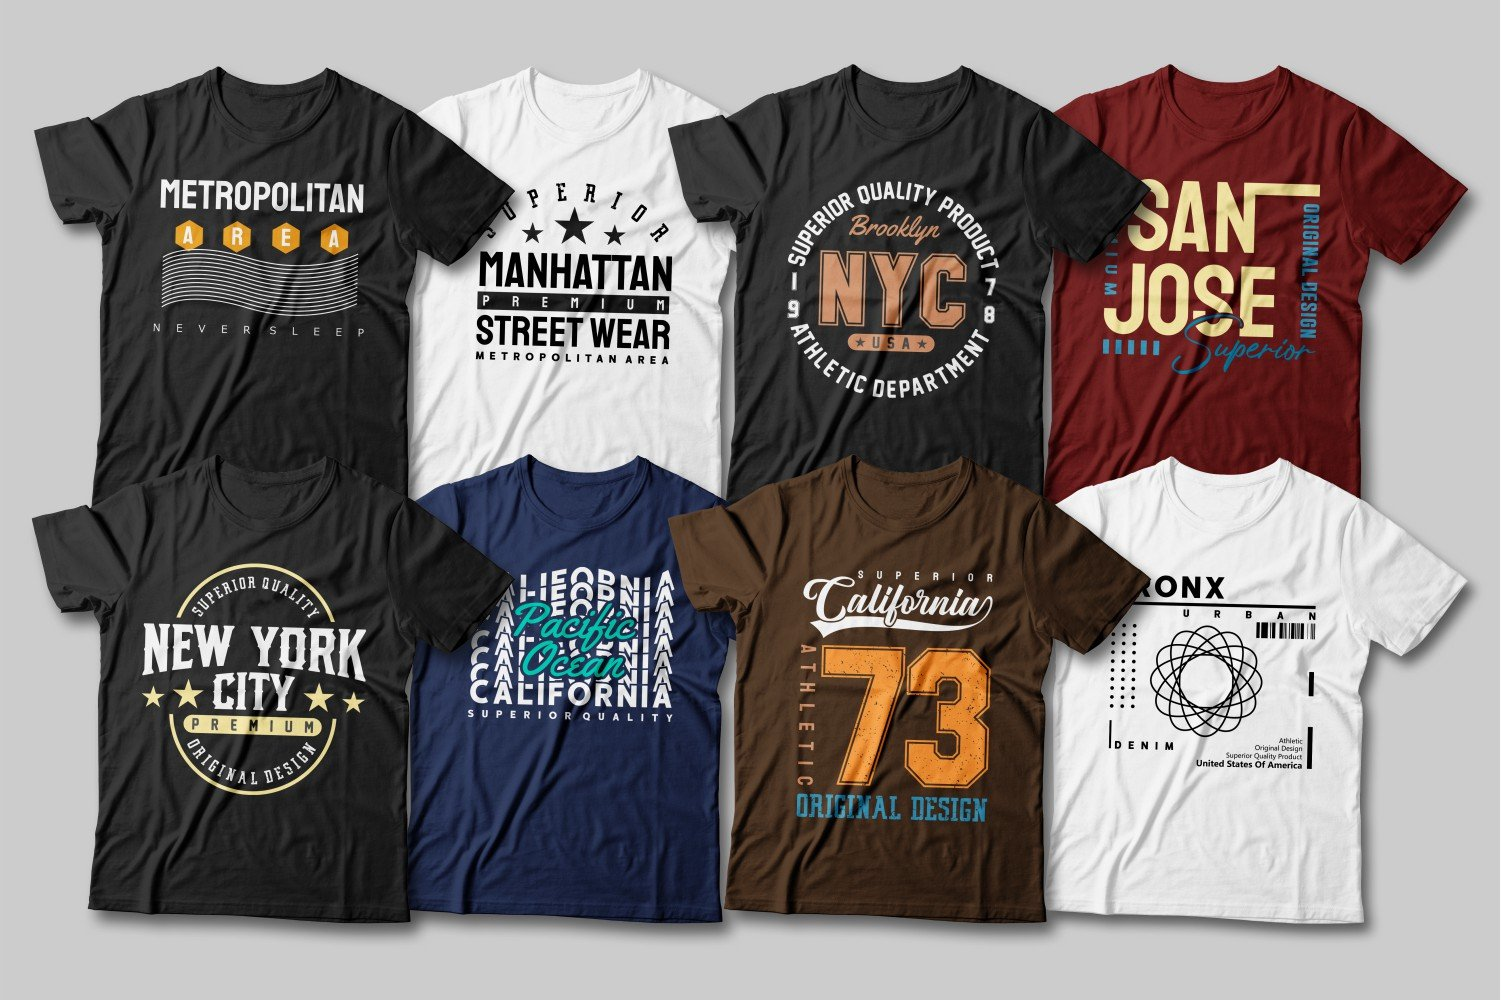 Multi-colored T-shirts with a variety of slogans from the most popular places in New York.